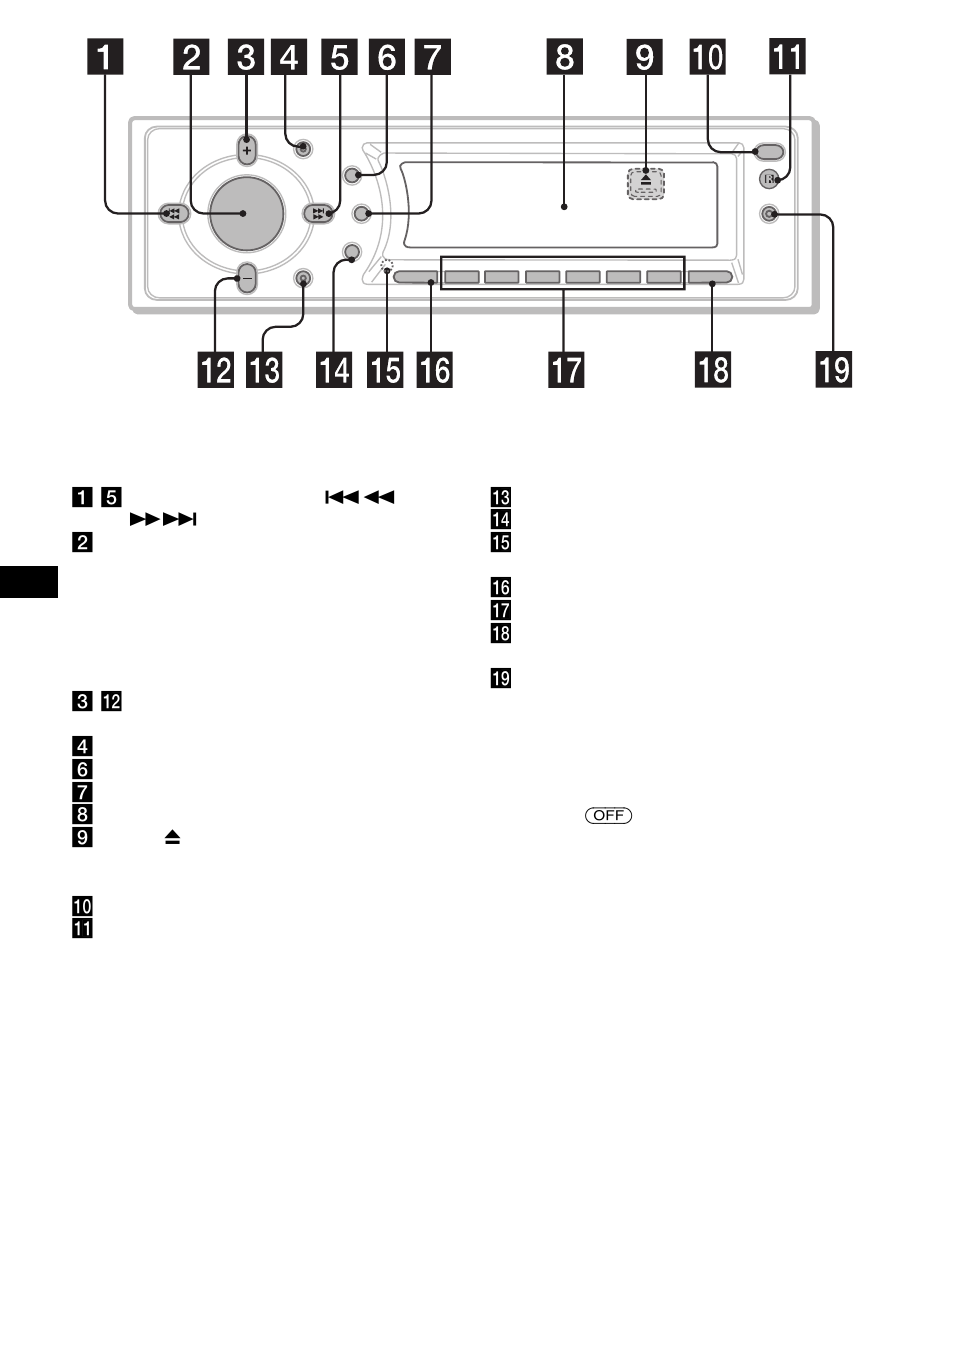 Cdx Gt565Up Wiring Diagram from lh5.googleusercontent.com